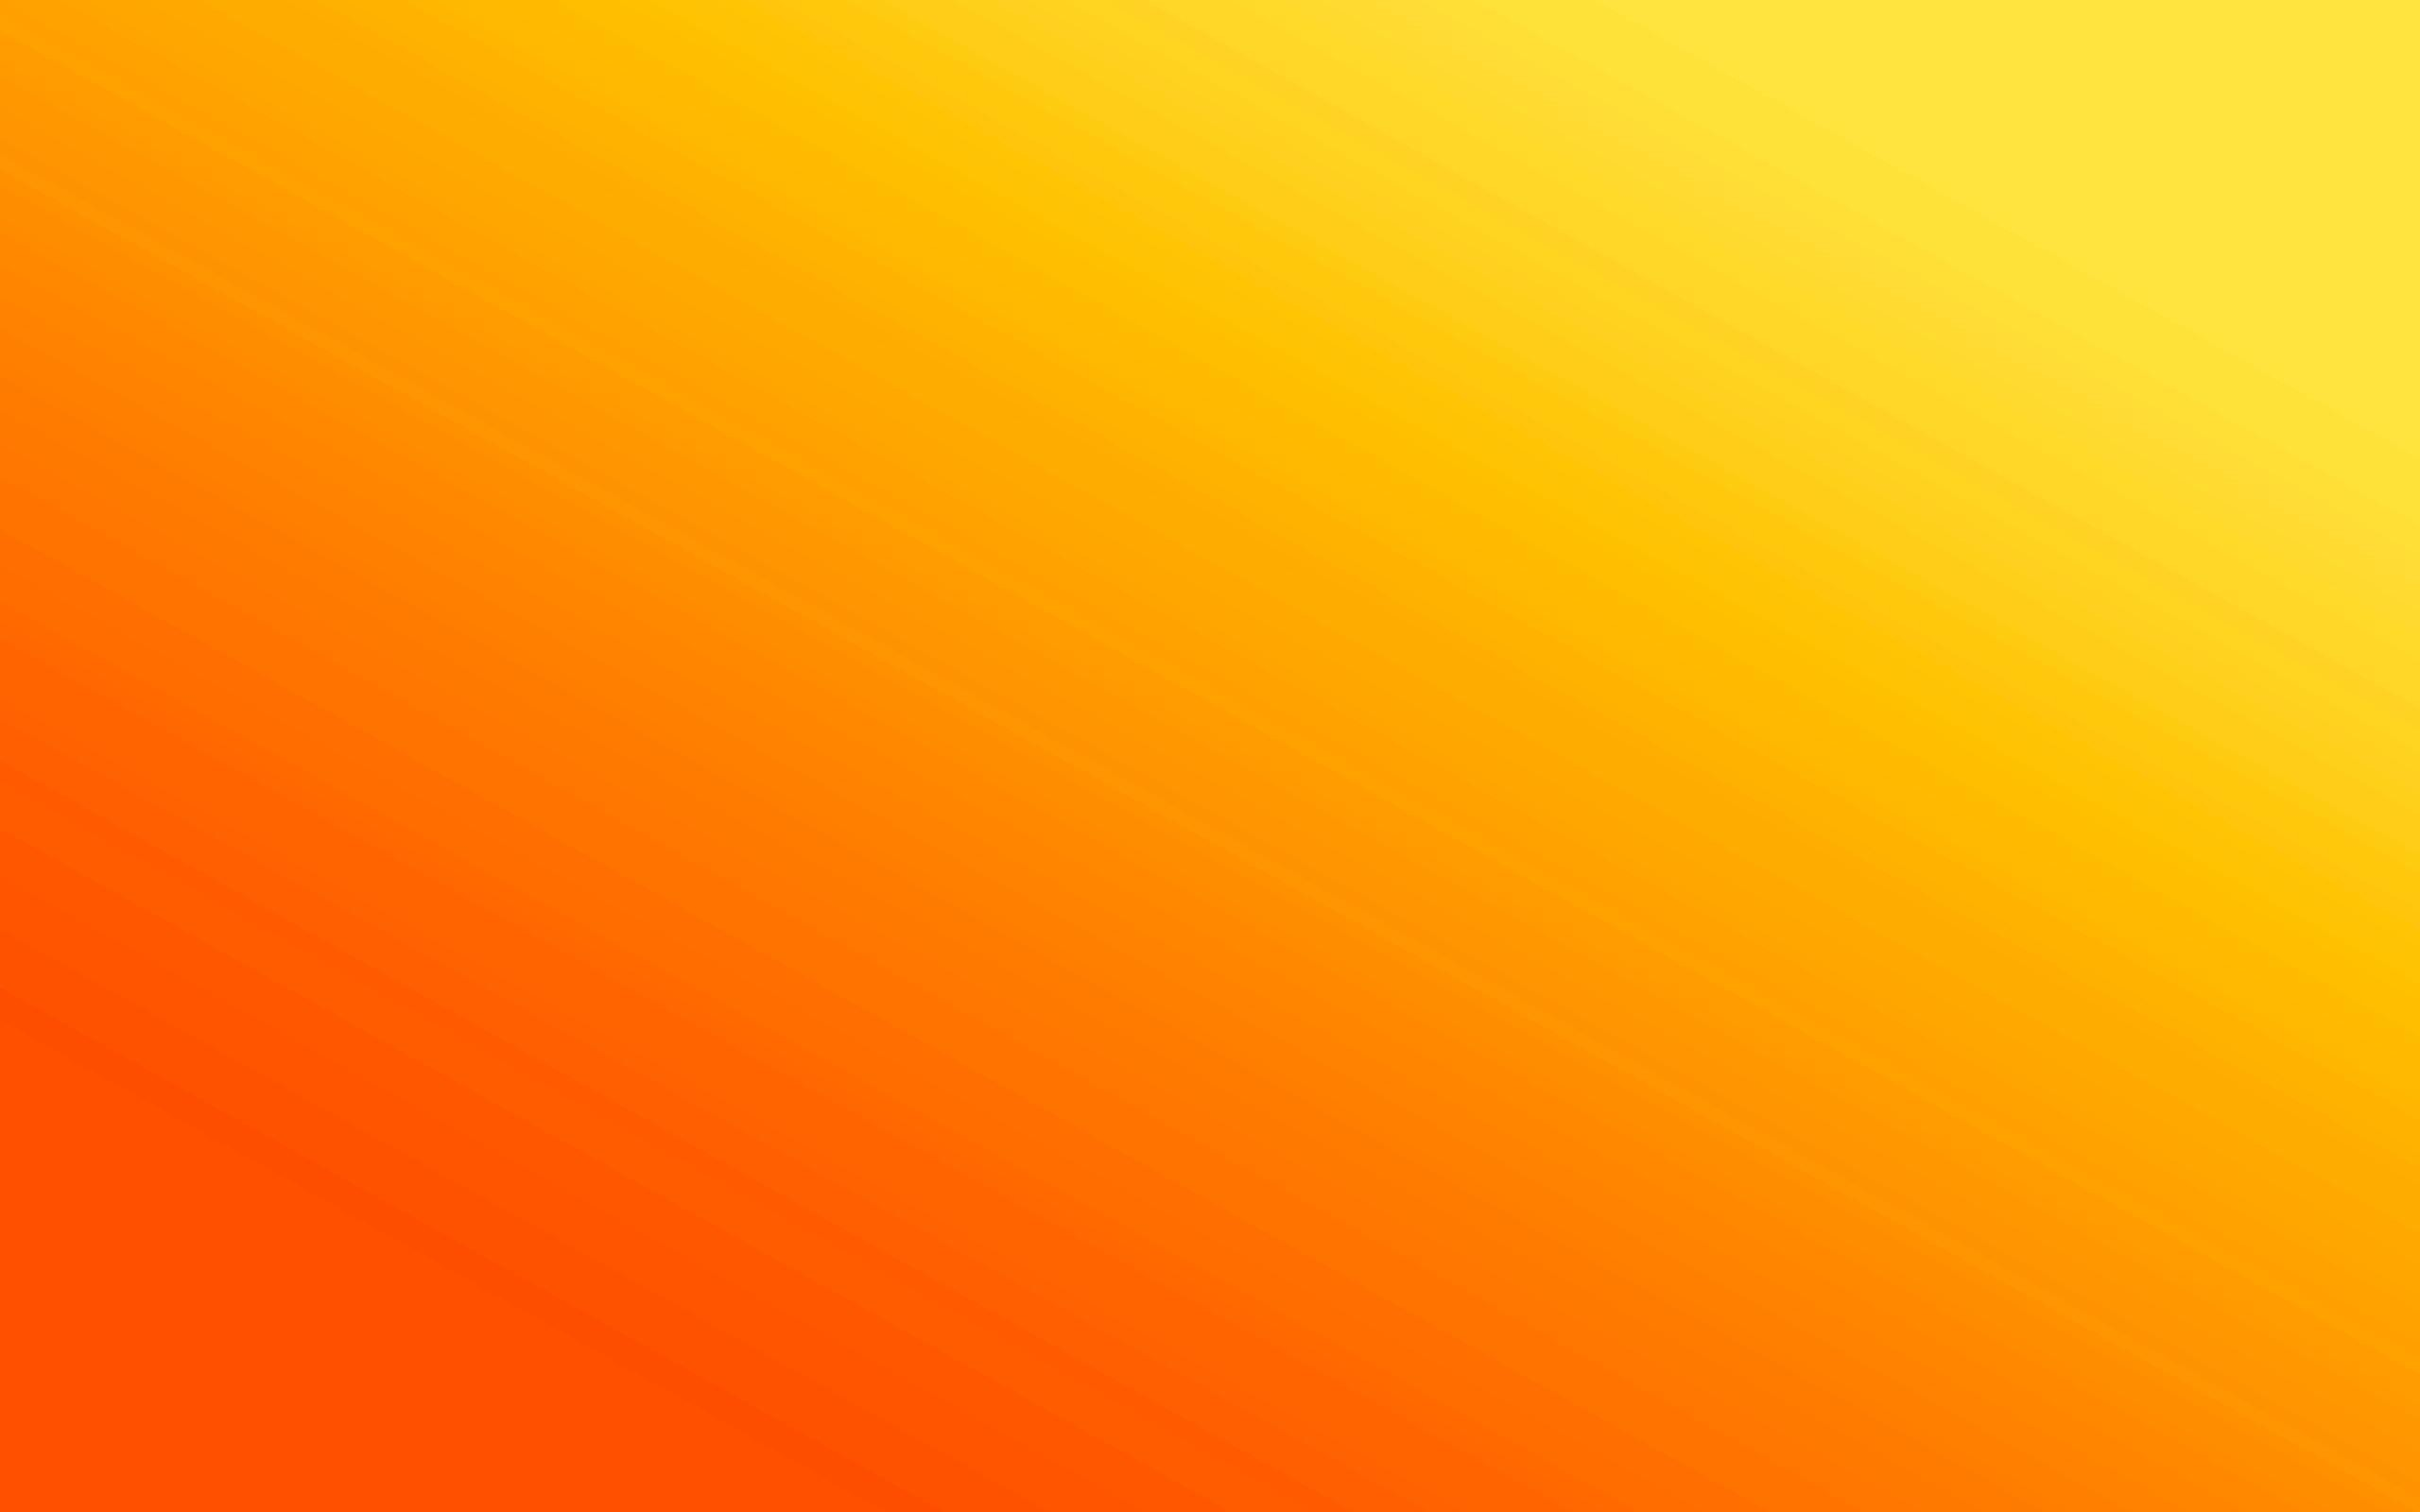 1416935 gorgerous neon orange background 2560x1600 ios